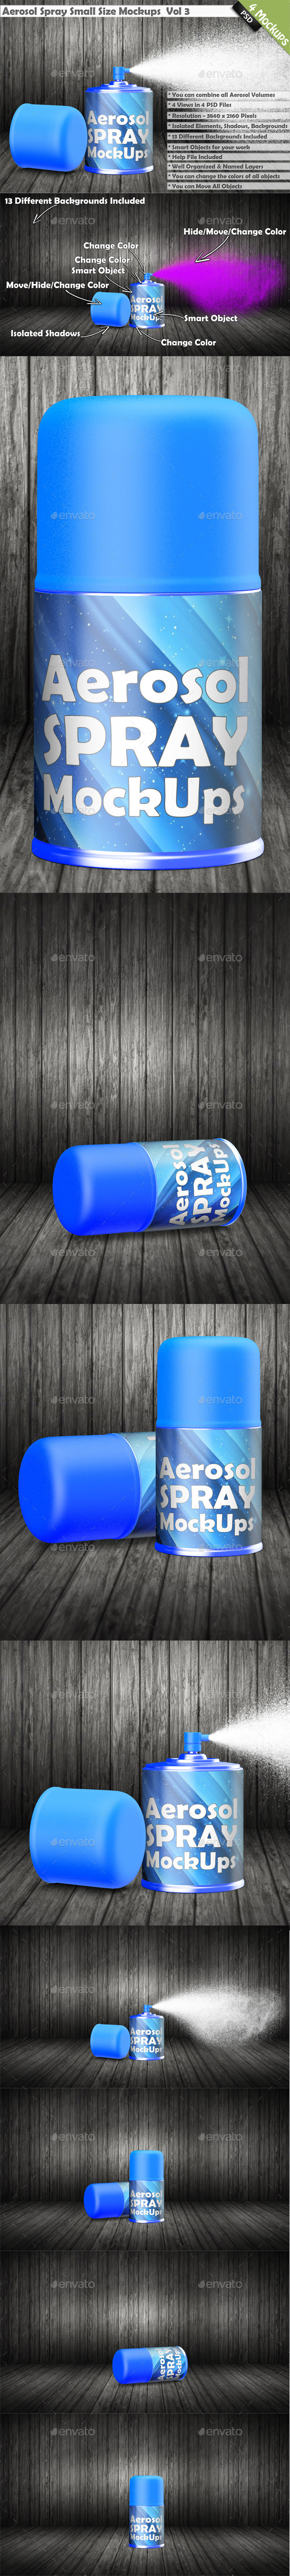 Aerosol Spray Can Mockup - Miscellaneous Packaging